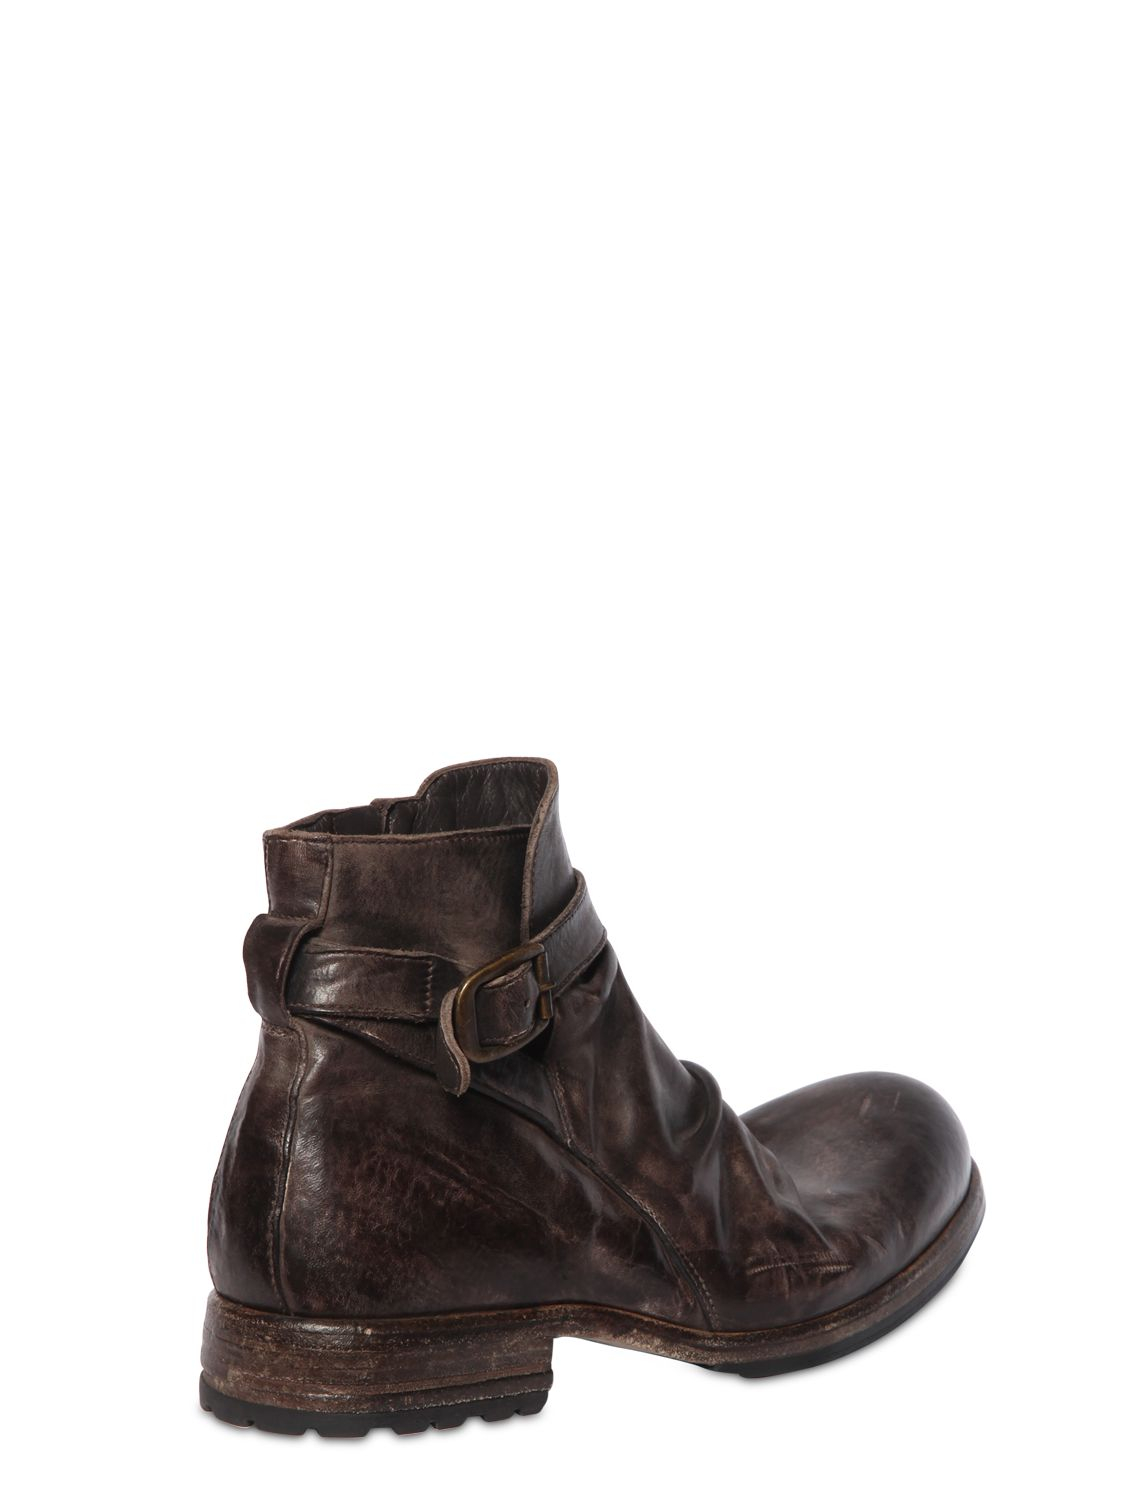 SHOTOVINTAGE EFFECT WASHED LEATHER BOOTS sW2QCuKsI